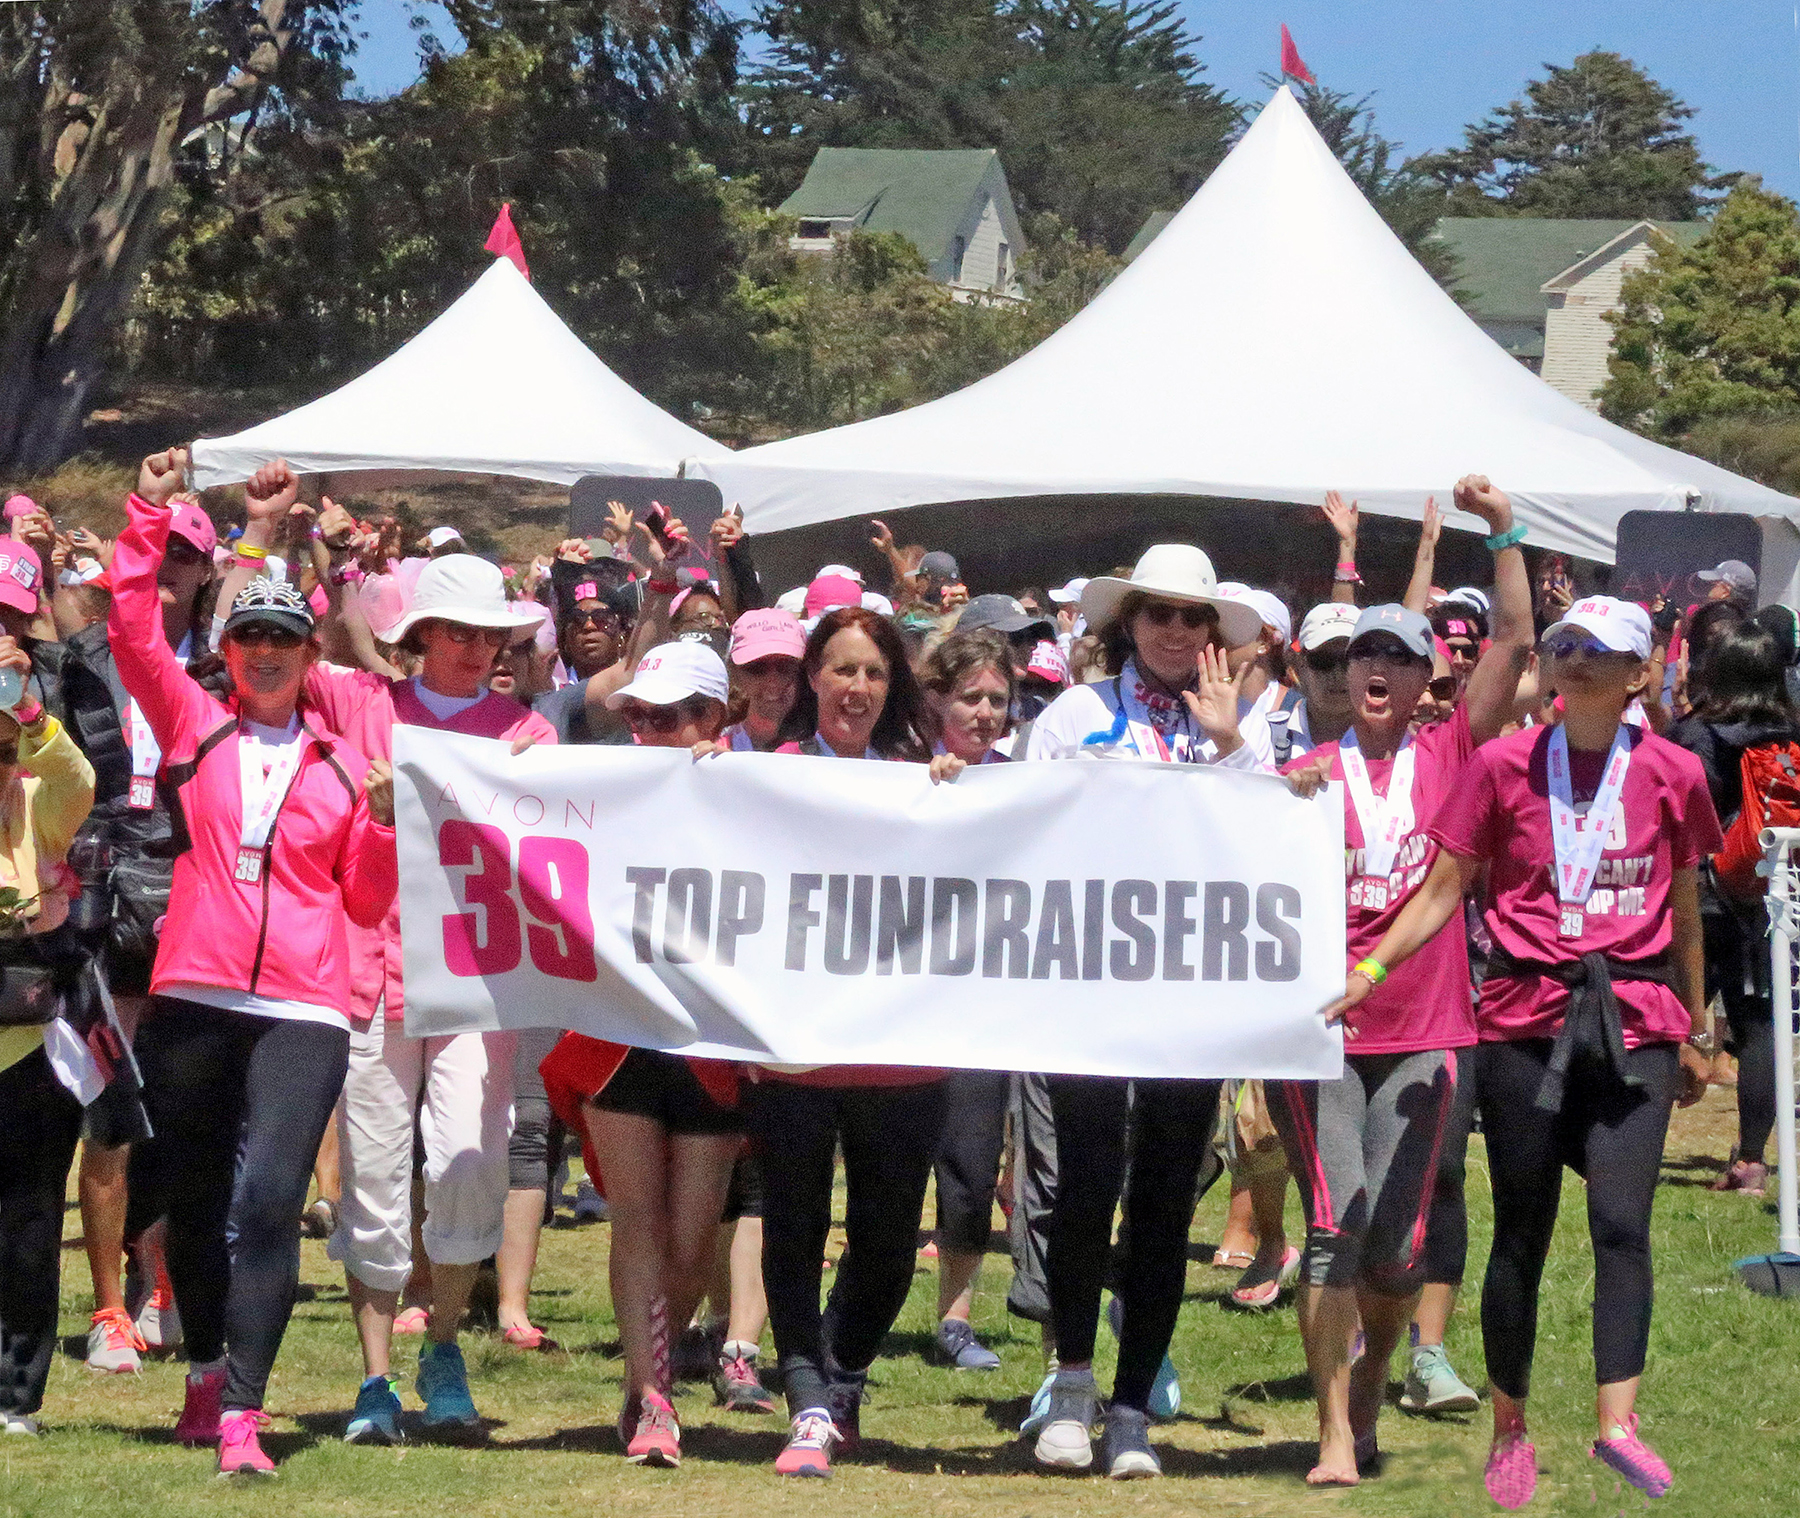 dr alisa gean walks 39 miles raises thousands to fight breast dr alisa gean holding the top fundraisers banner on the far left raises a hand in support of the fight against breast cancer